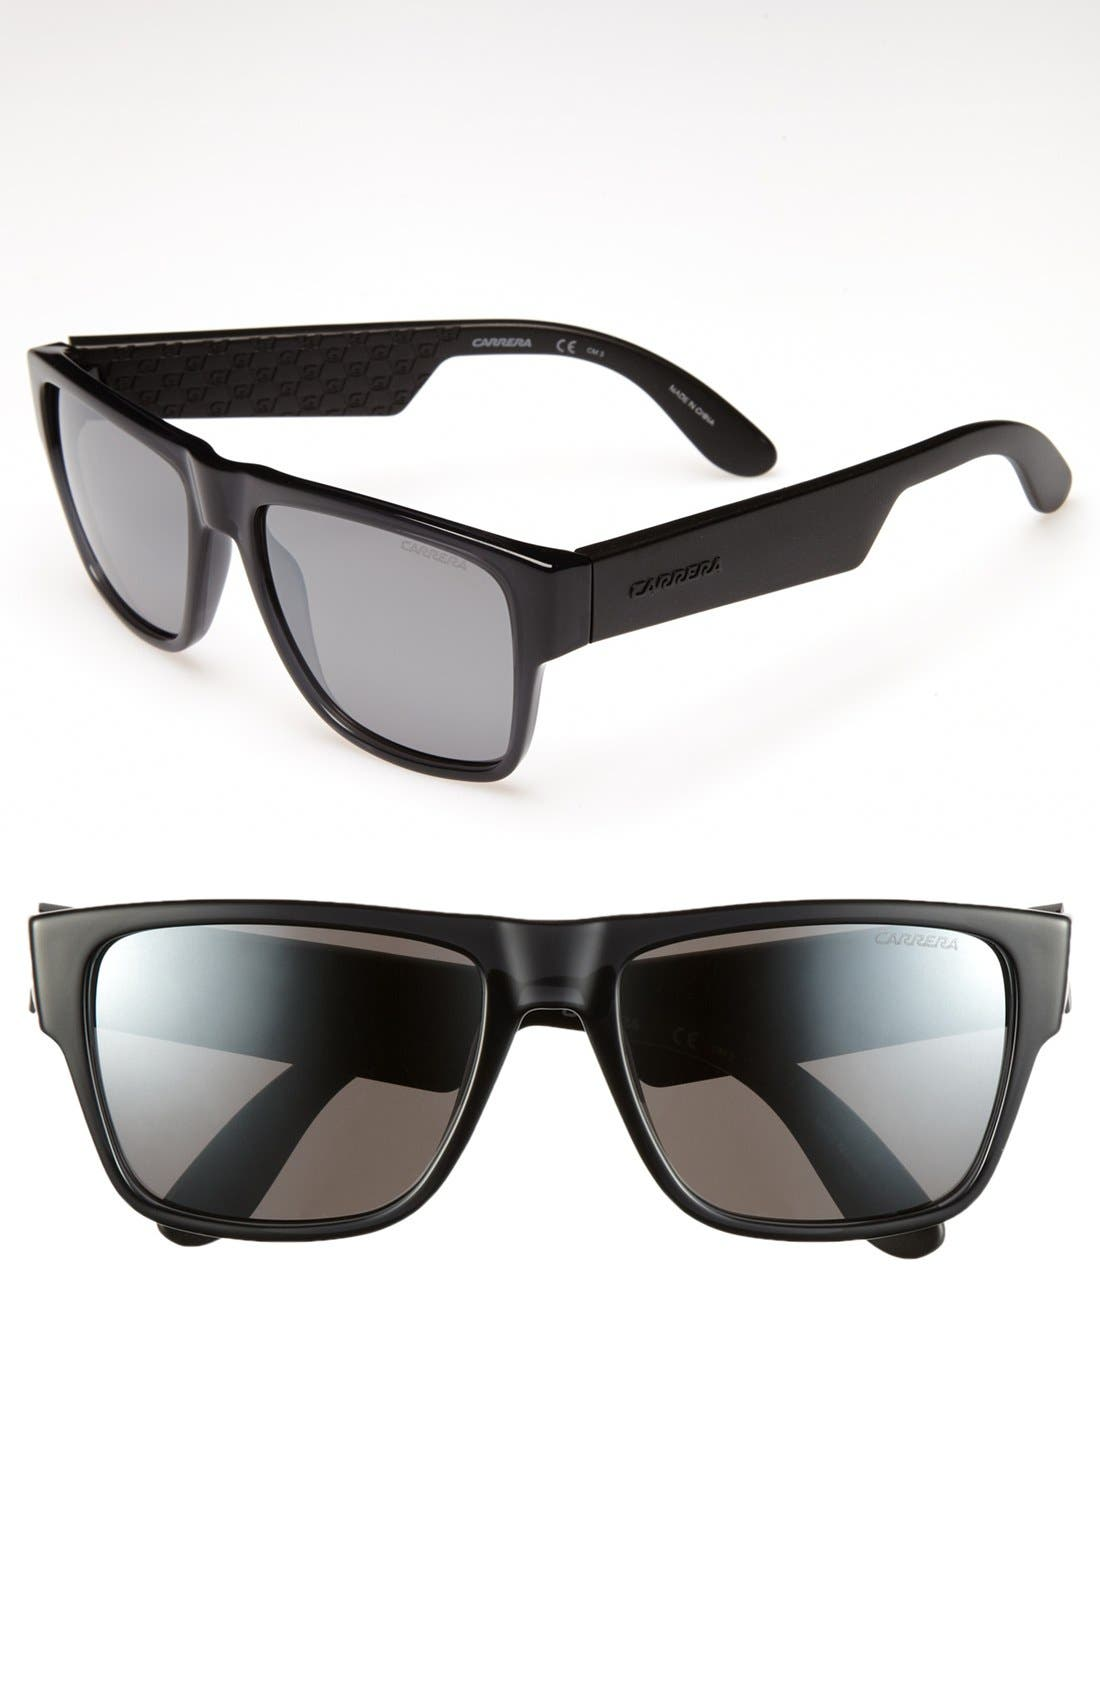 Main Image - Carrera Eyewear '5002' 55mm Sunglasses